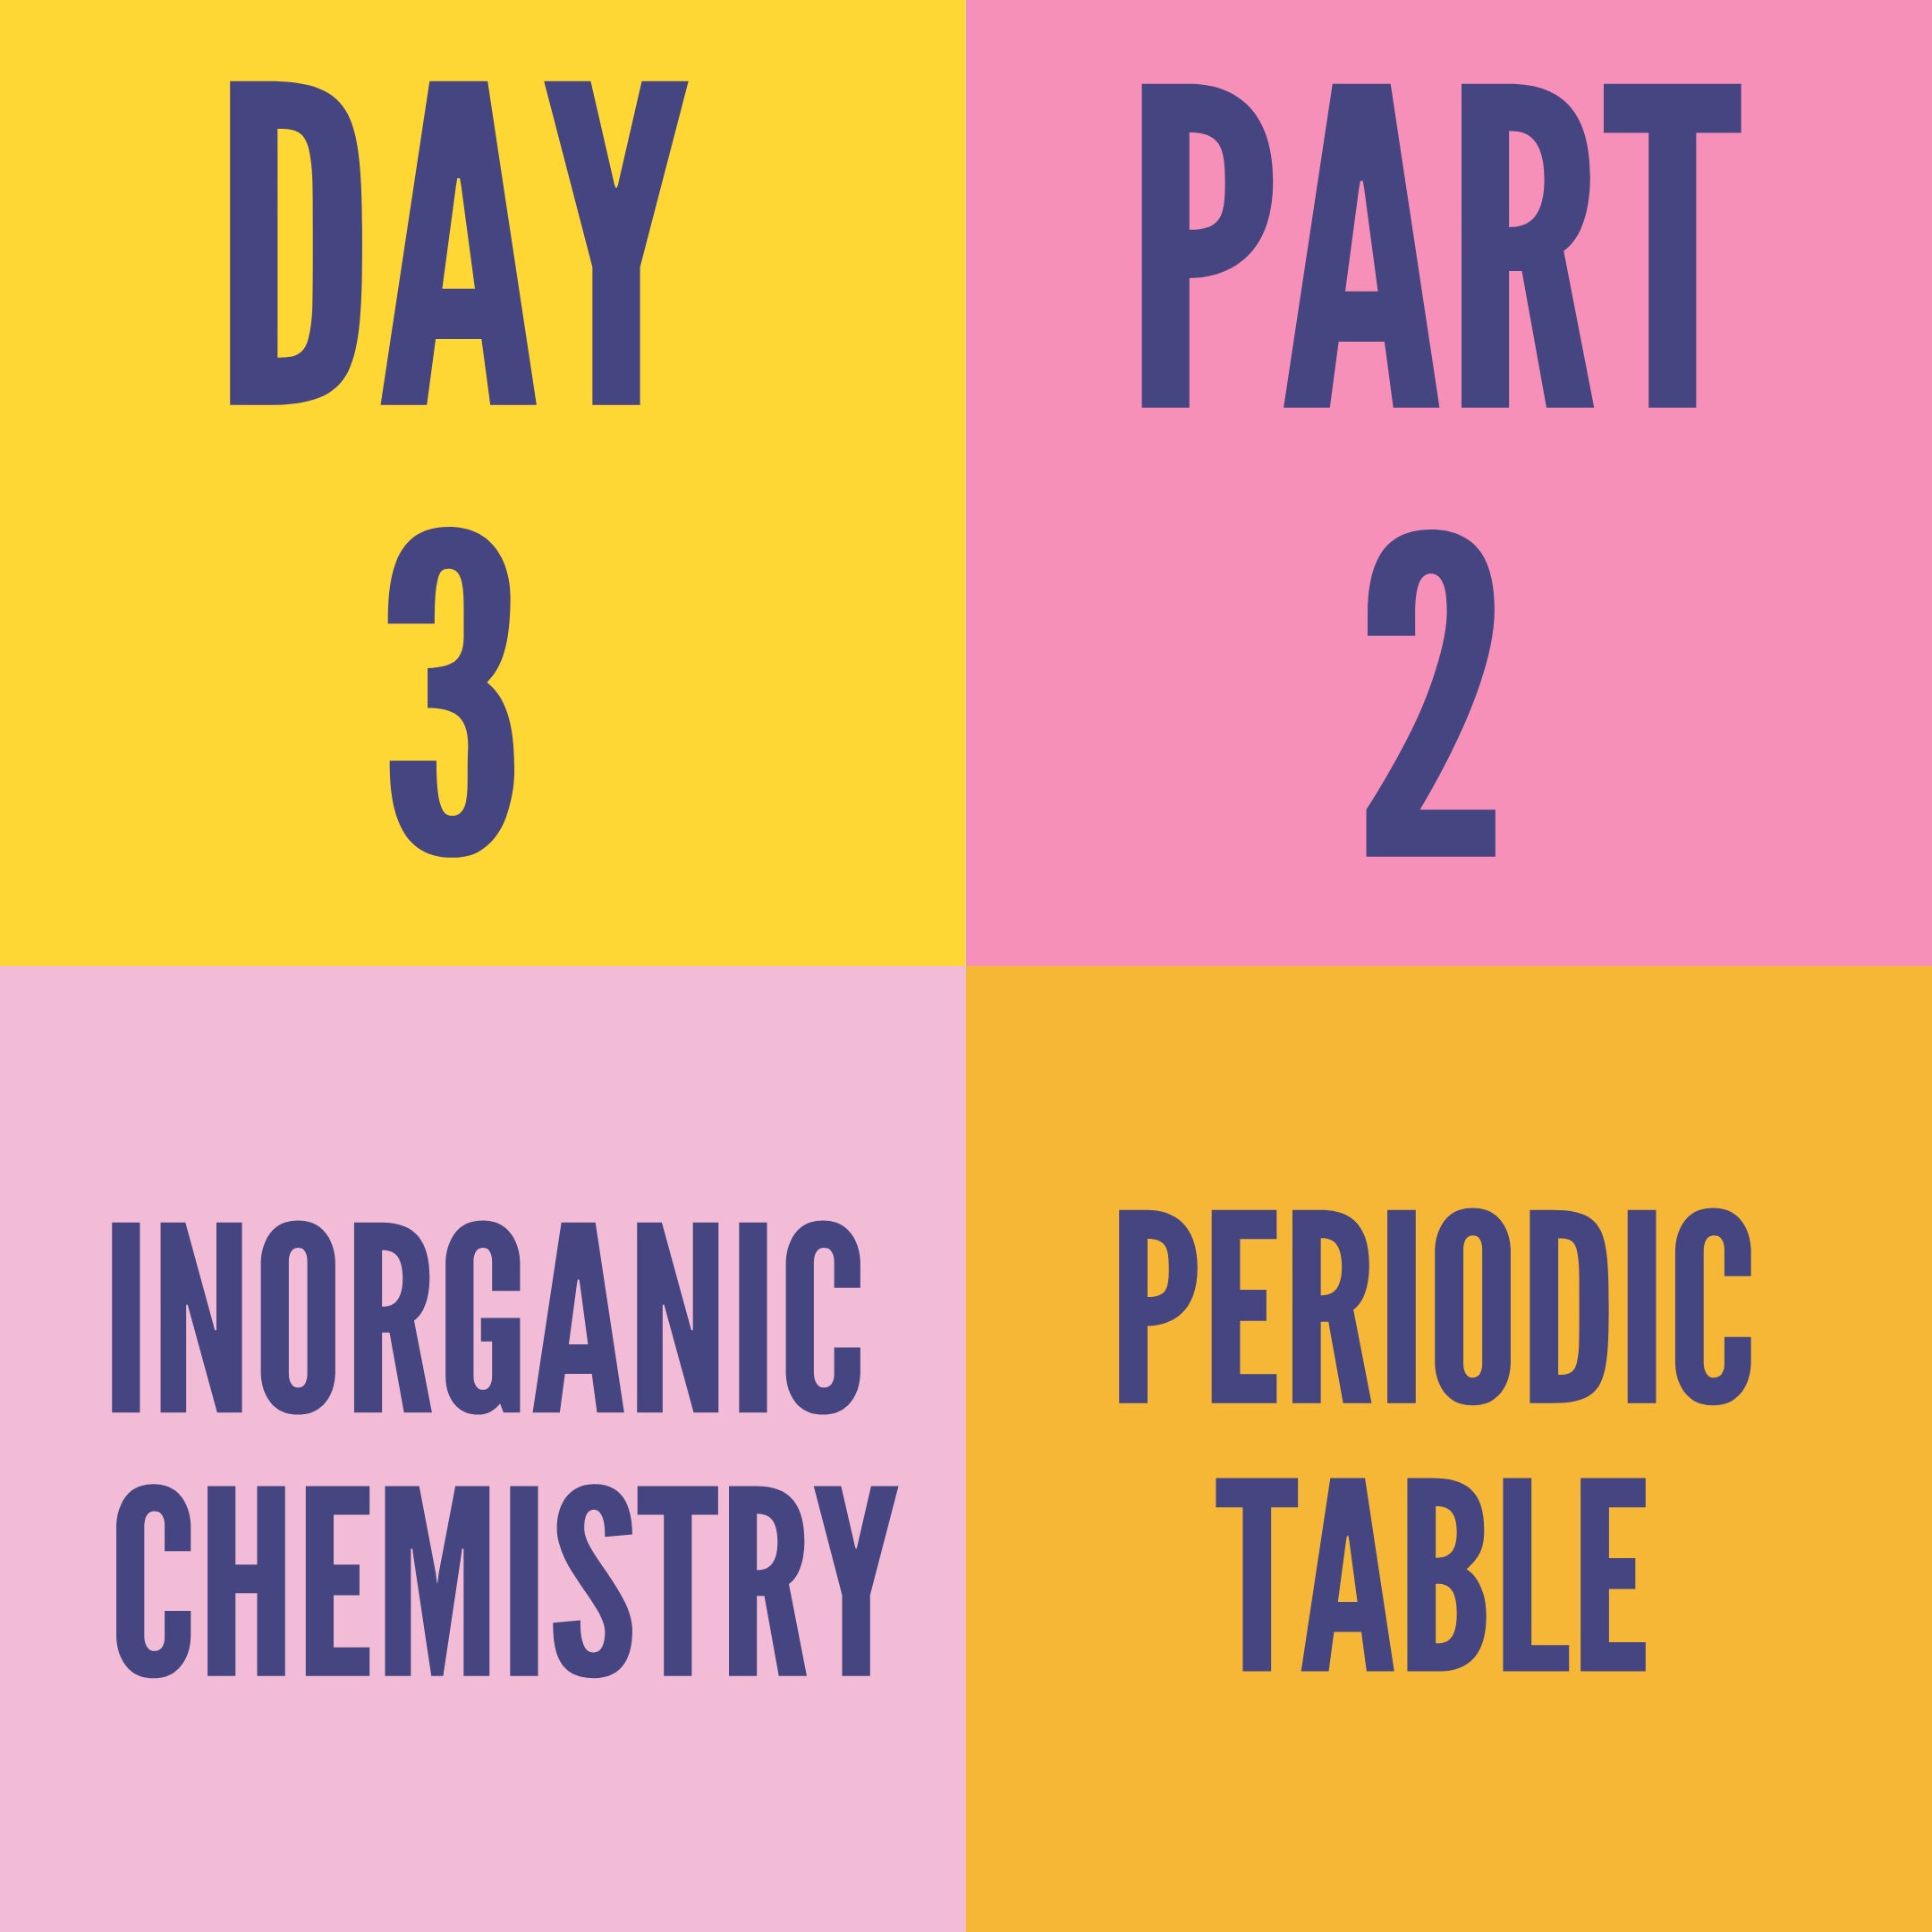 DAY-3 PART-2 PERIODIC TABLE